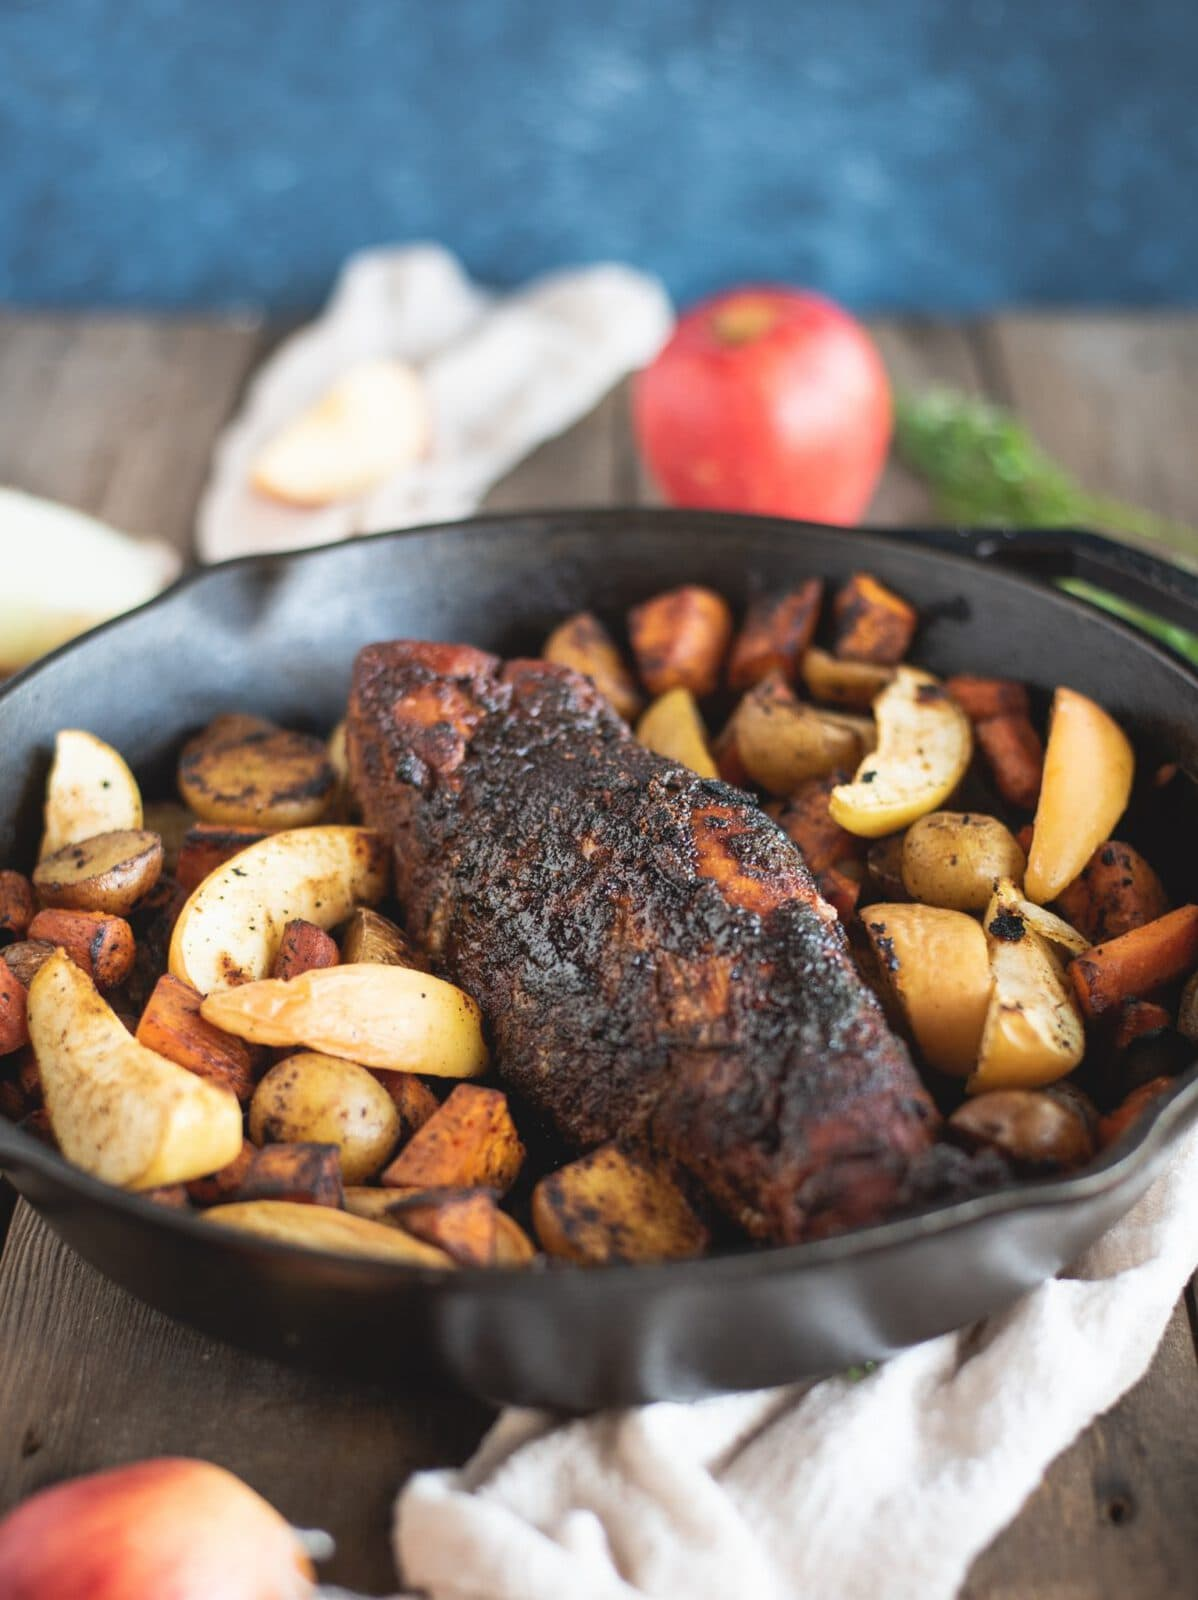 Pork Tenderloin with Apples and Root Vegetables in a skillet with blue background